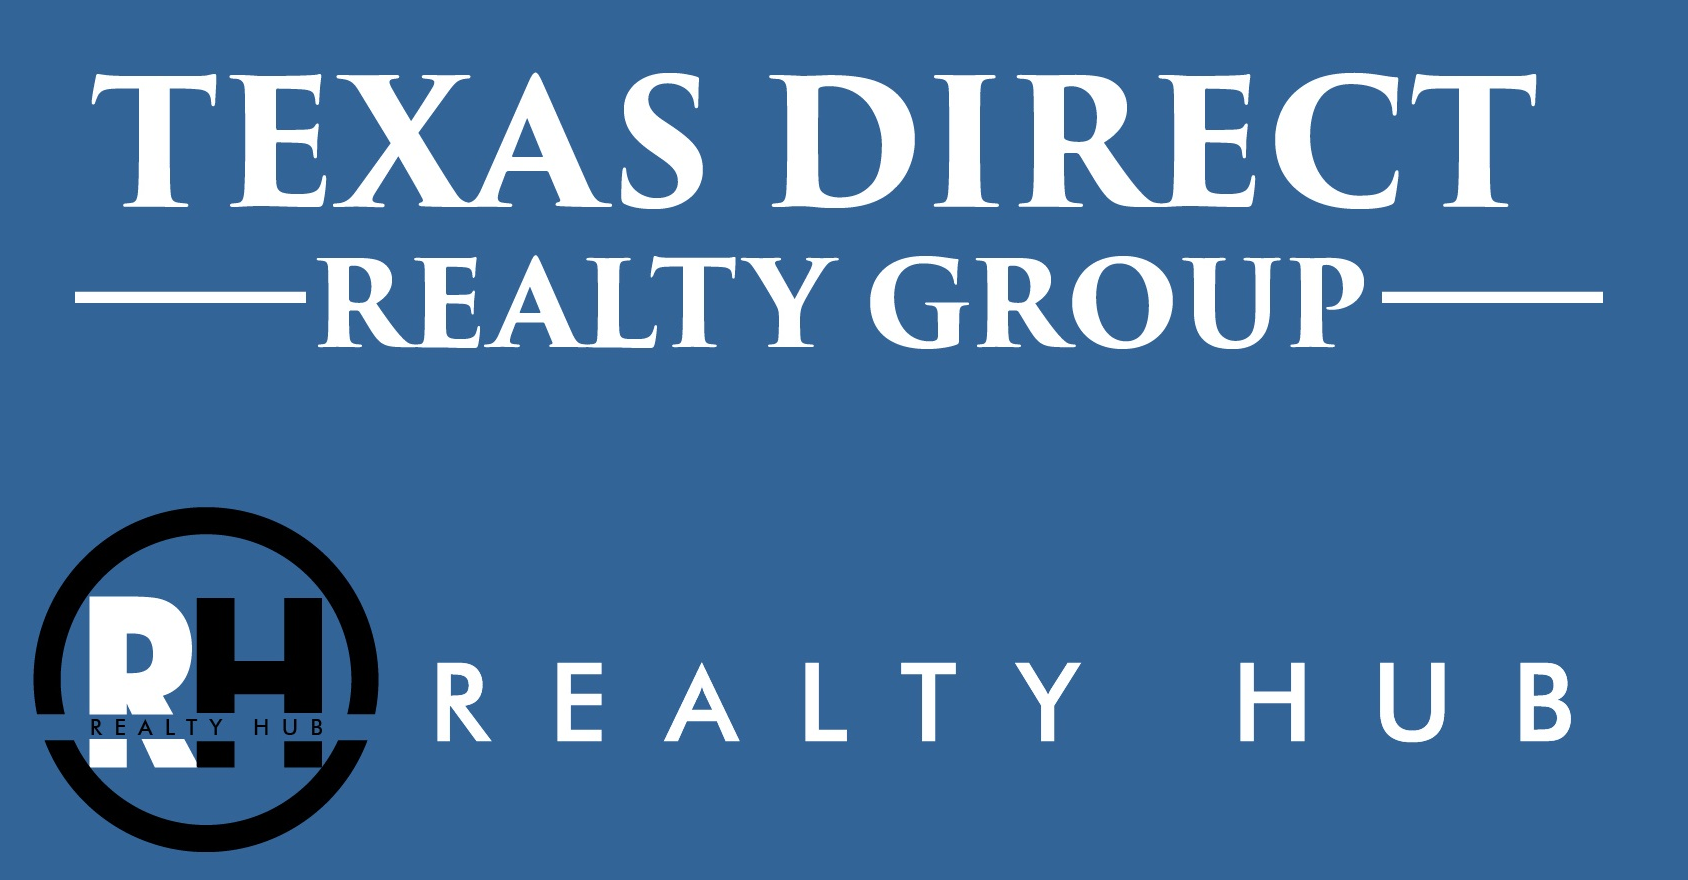 Texas Direct Realty Group POWERED by REALTY HUB, a Chatbot